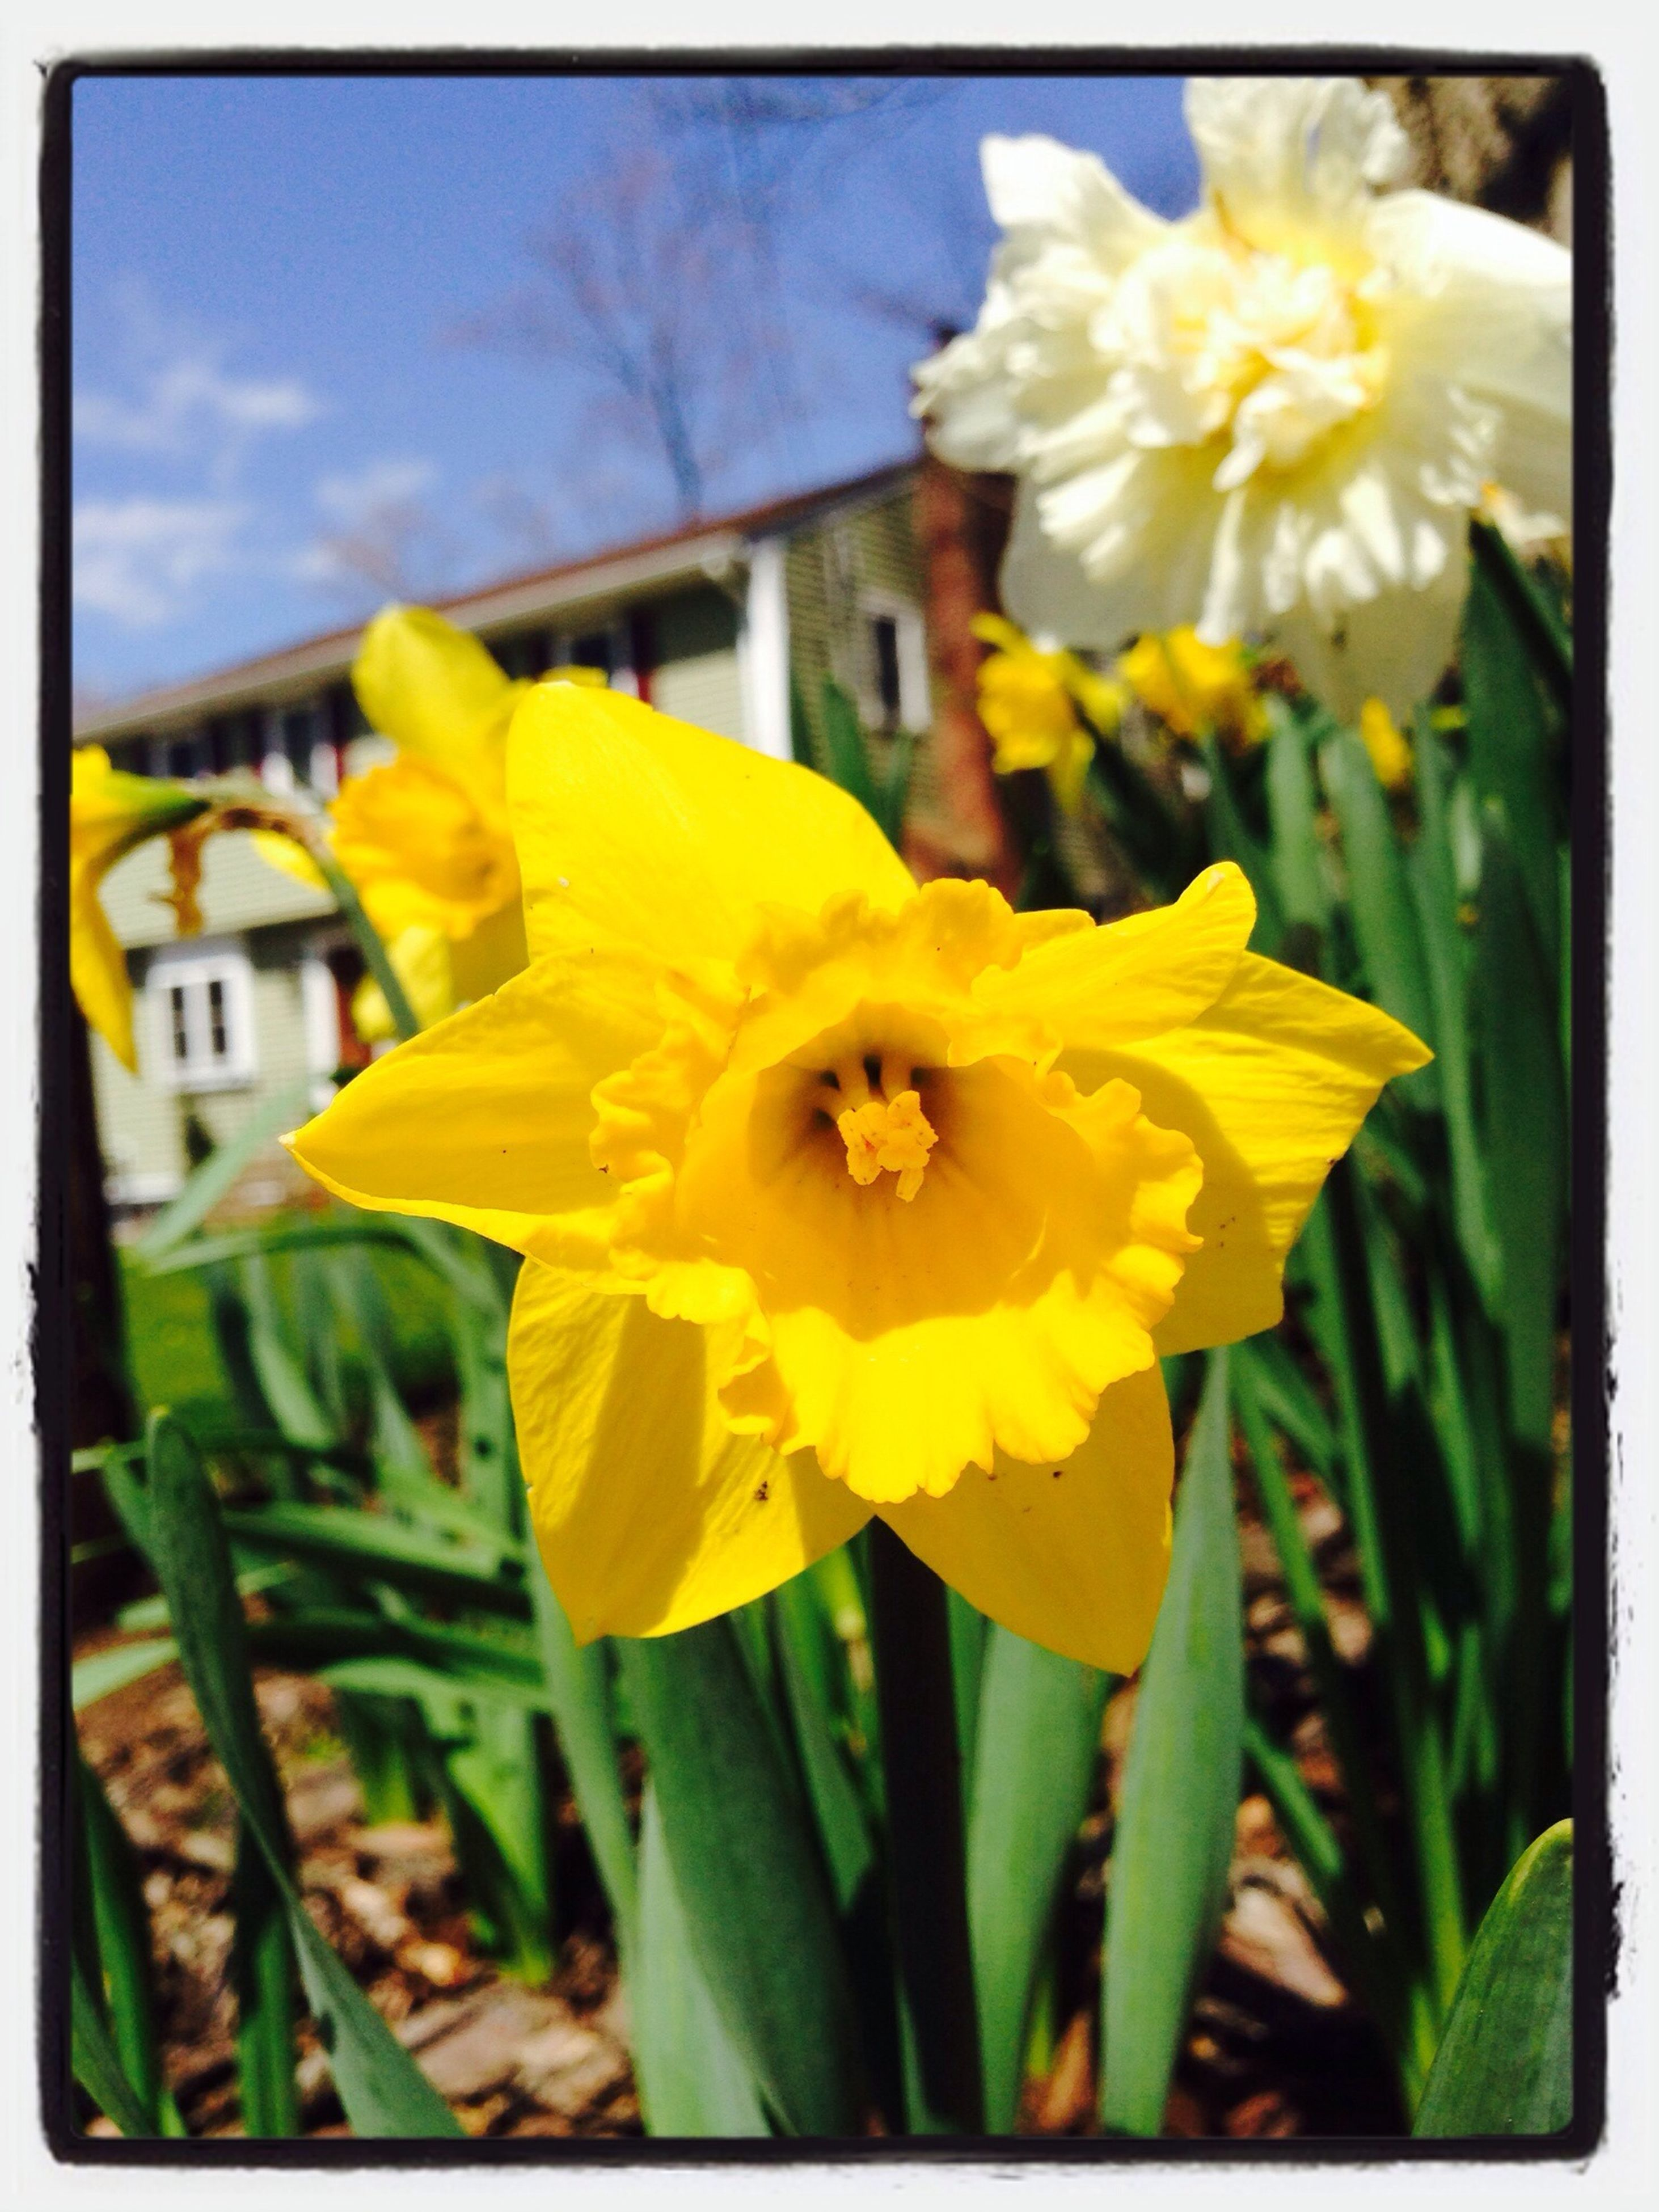 flower, petal, freshness, flower head, fragility, yellow, transfer print, growth, focus on foreground, close-up, beauty in nature, blooming, auto post production filter, plant, nature, pollen, in bloom, day, daffodil, outdoors